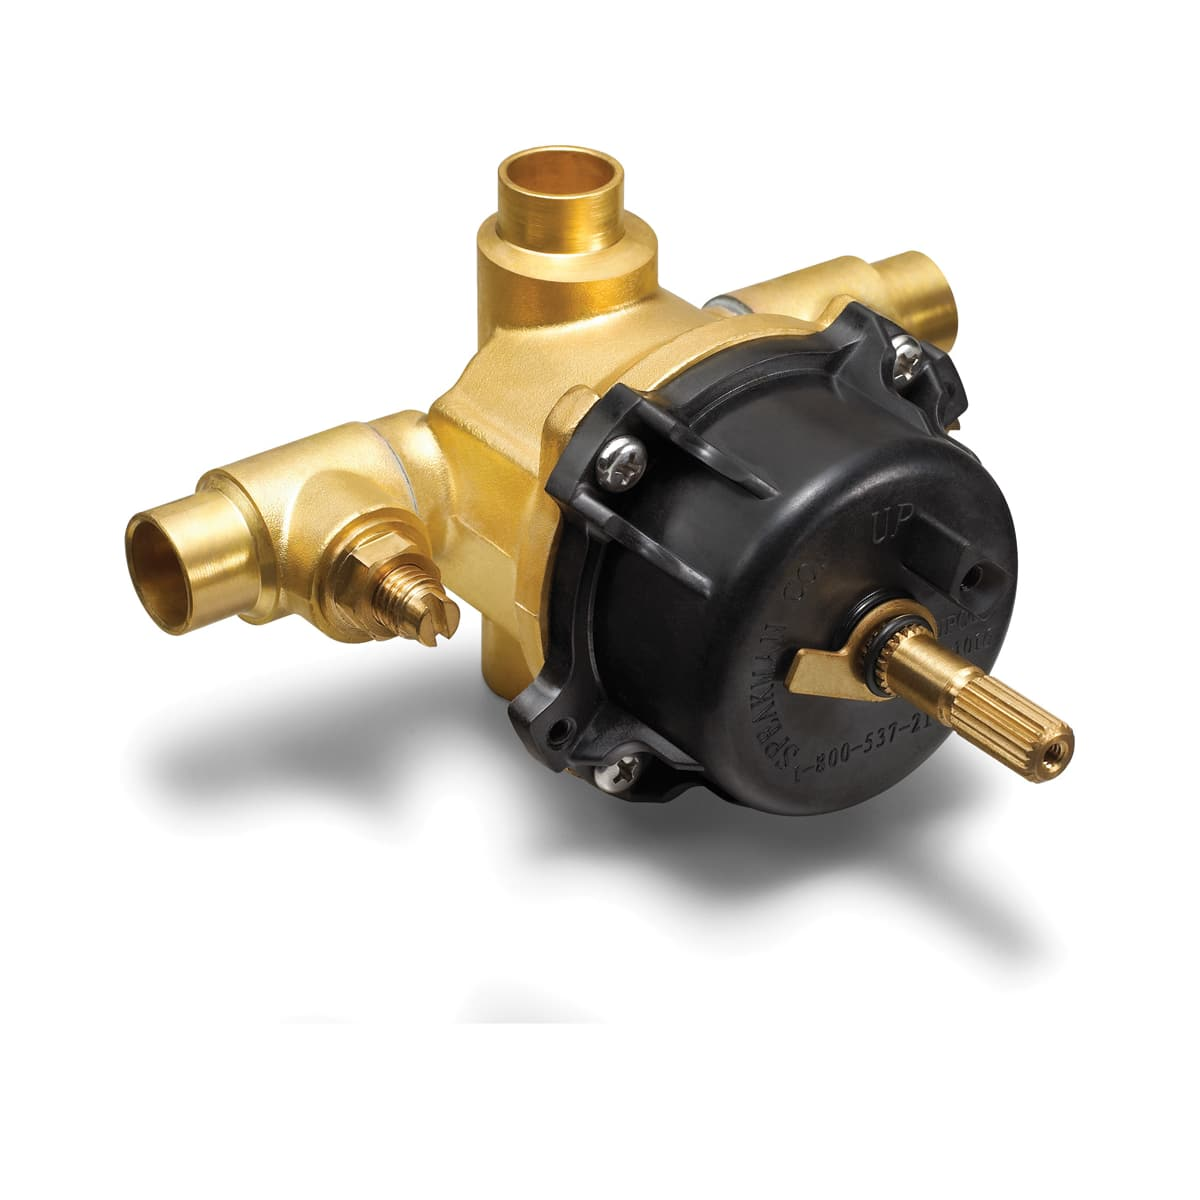 Speakman Cpv 3000 Is N A Sentinel Mark Ii 1 2 Inch Pressure Balance Rough In Valve With Integral And Check Stops Faucet Com